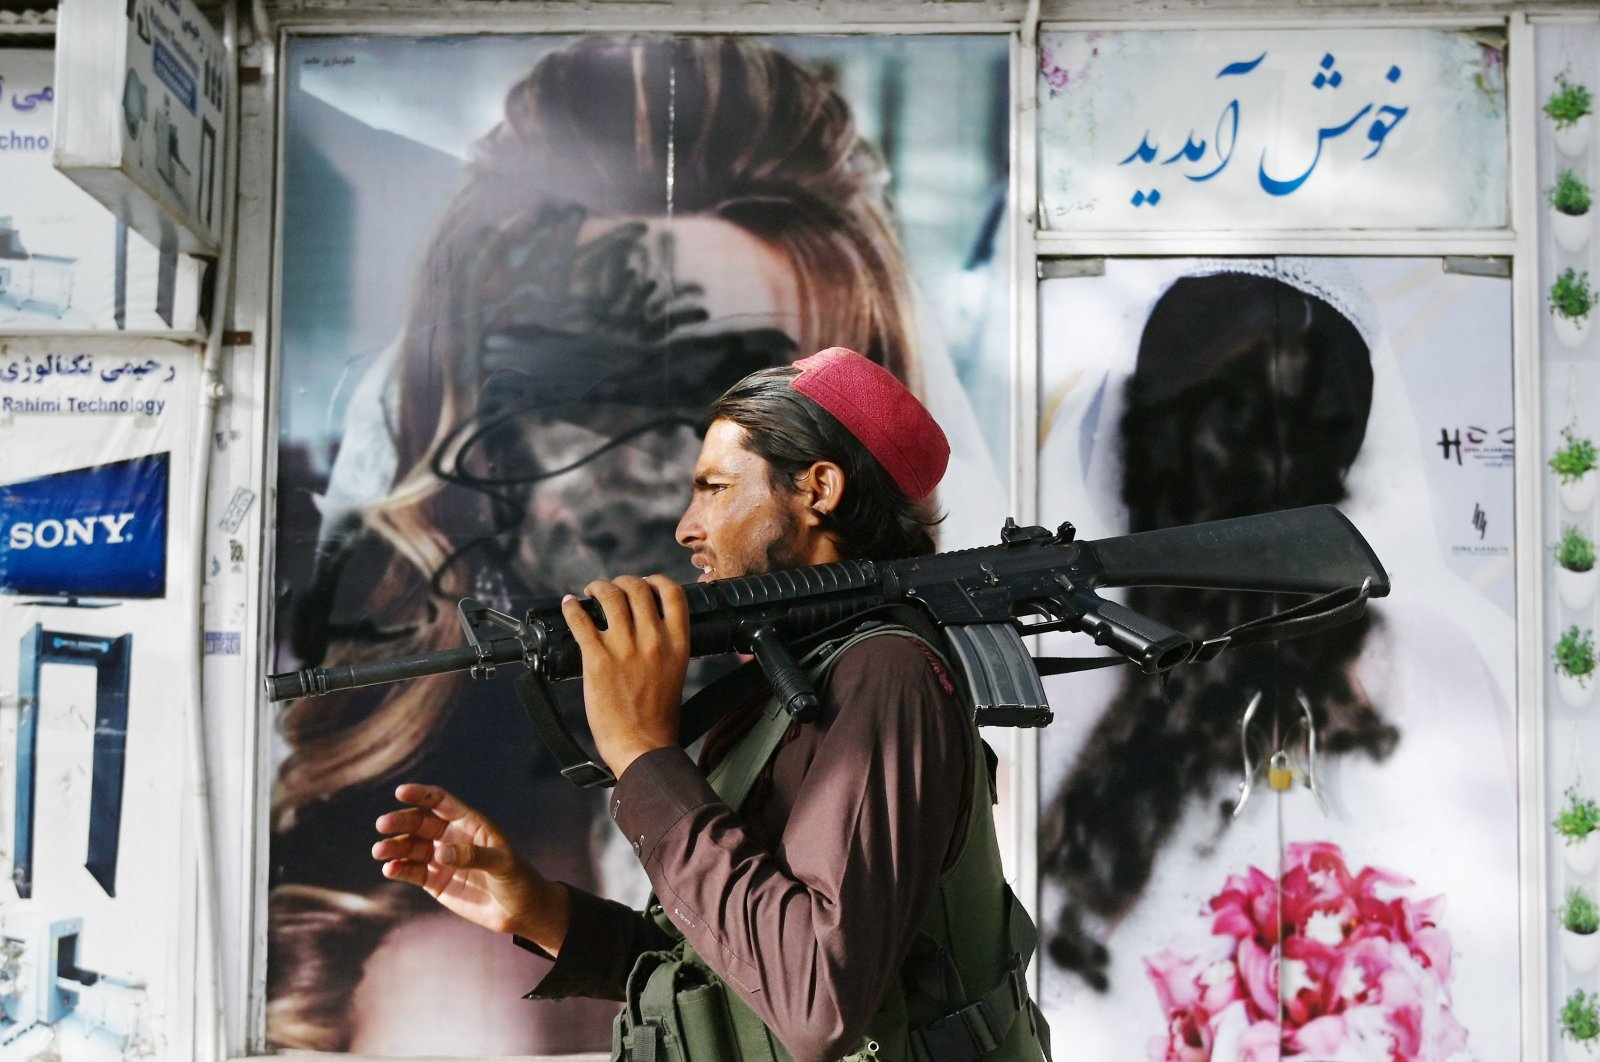 A Taliban fighter walks past a beauty salon with images of women defaced using spray paint in Shar-e-Naw in Kabul, Afghanistan, on Aug. 18, 2021. (AFP Photo)